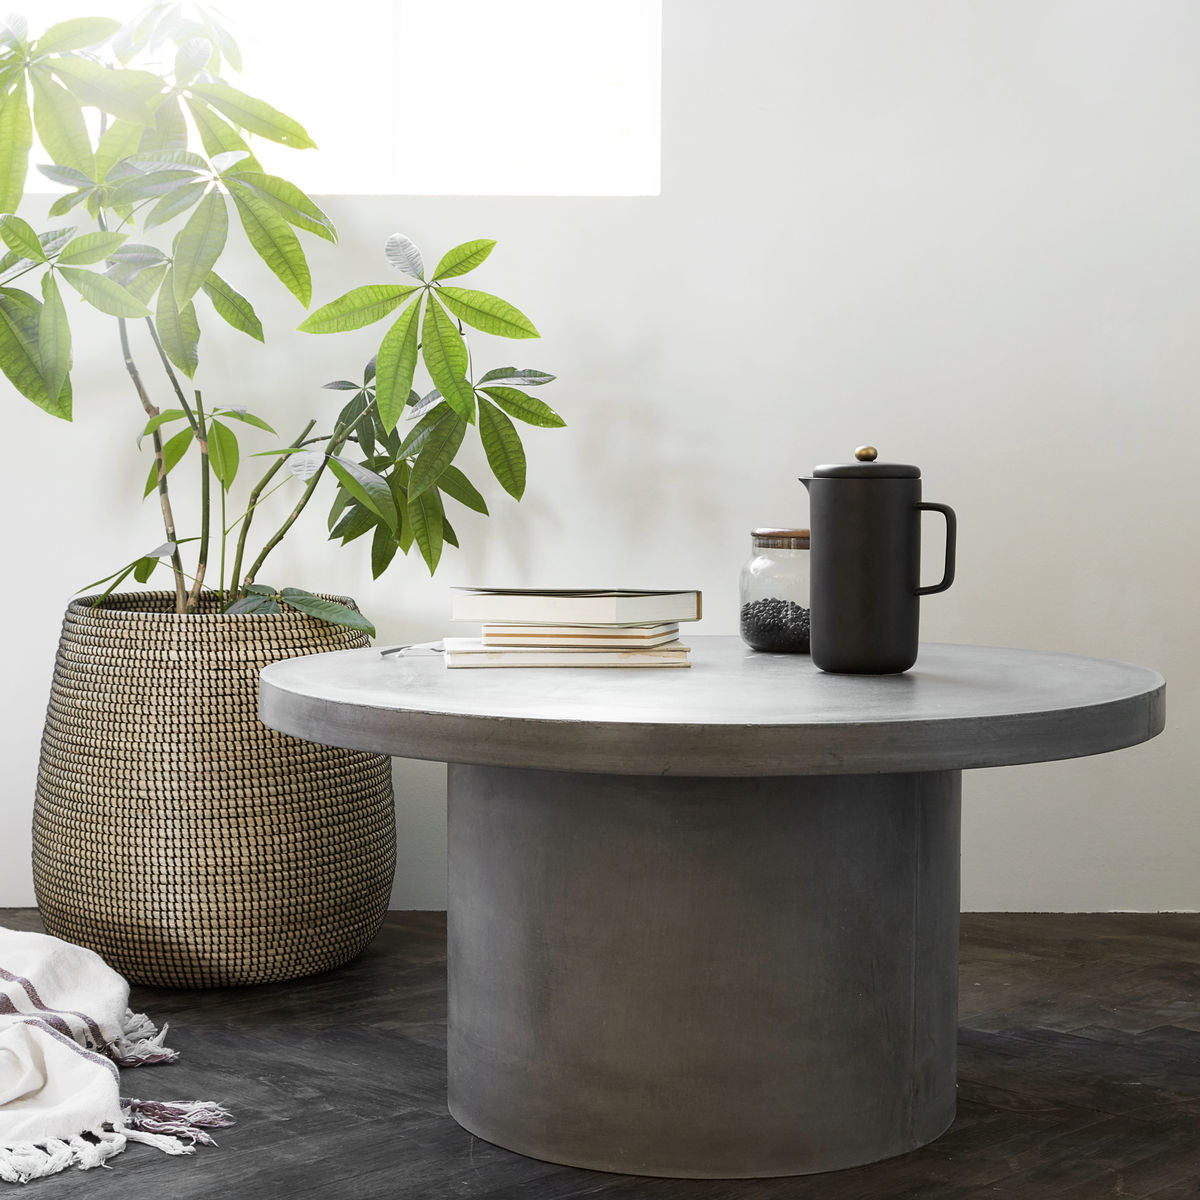 Gallery Large Concrete Coffee Table